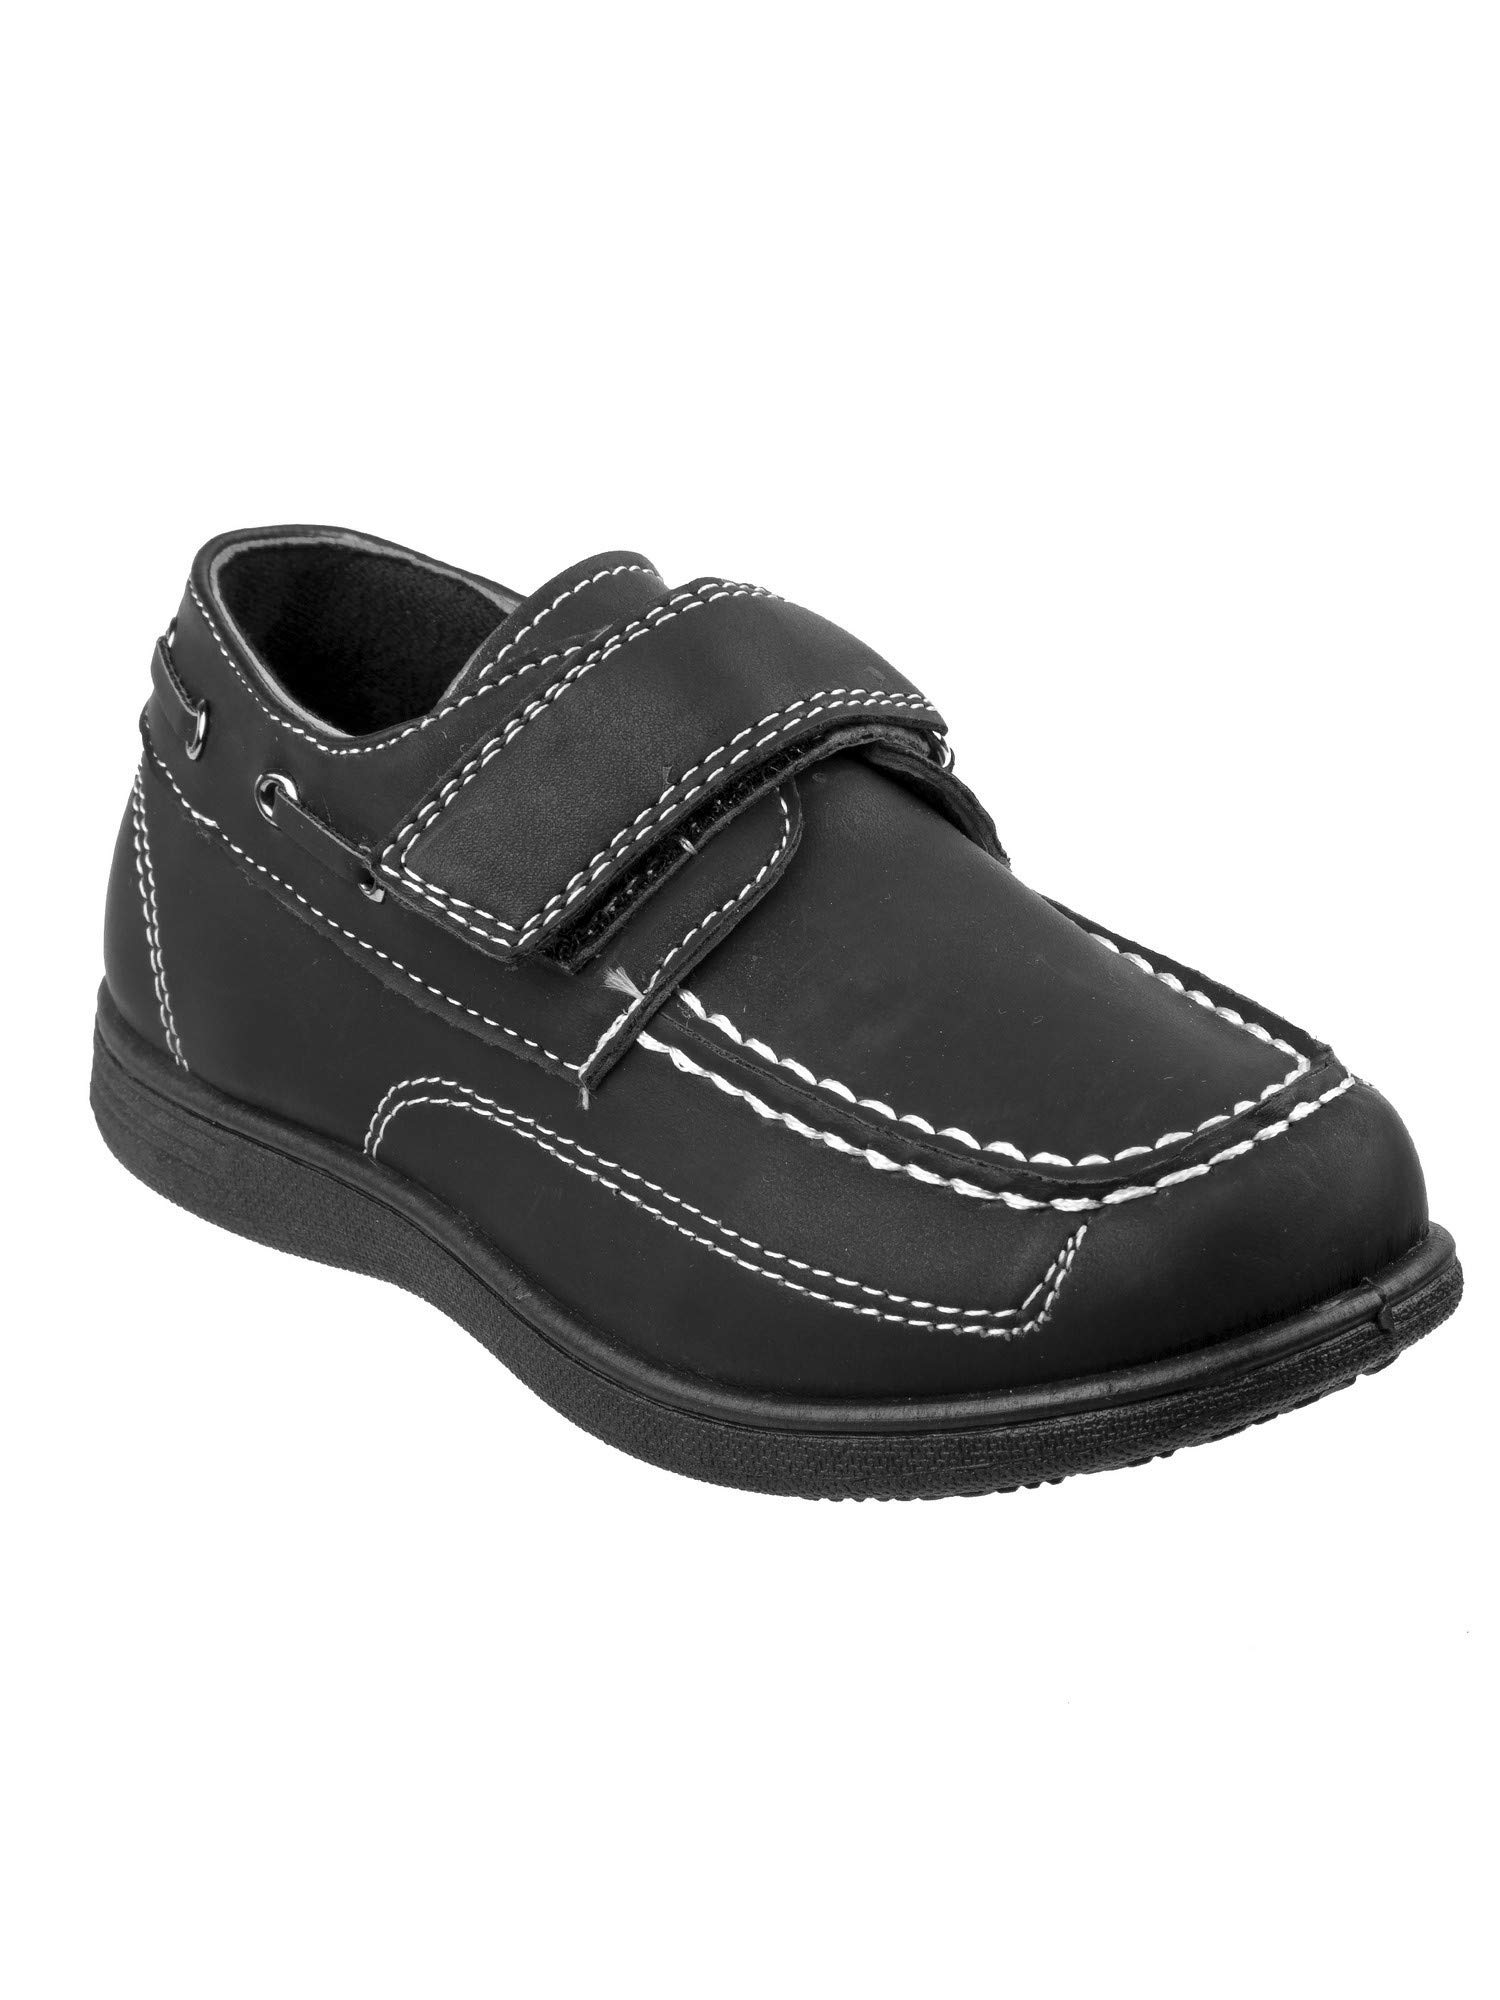 Josmo Little Boys Black Stitching Detail Hook-And-Loop Boat Shoes 10 Toddler